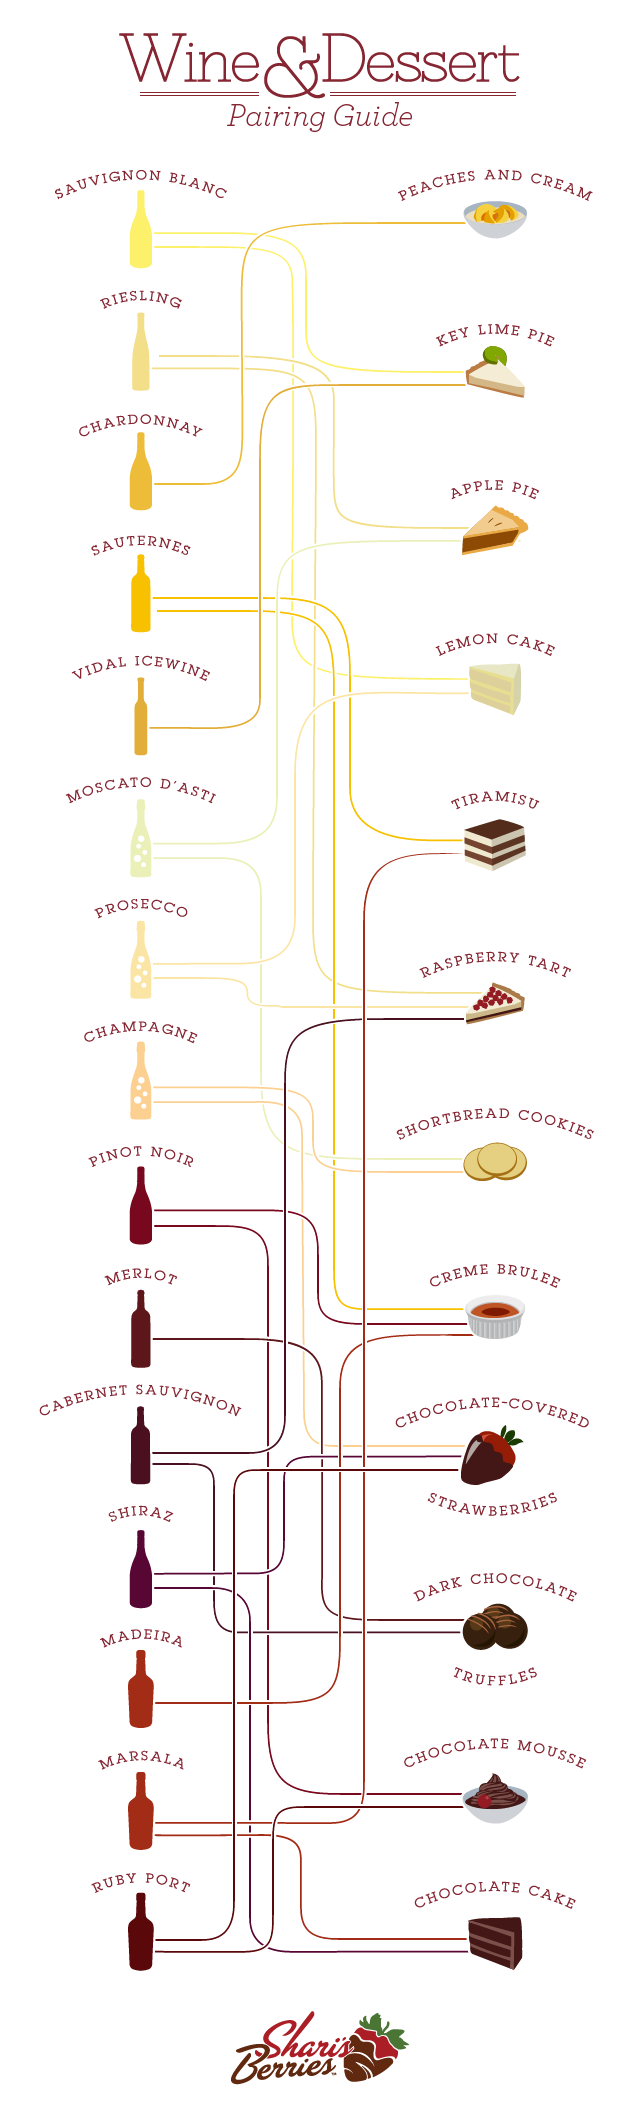 Wine and Dessert Guide